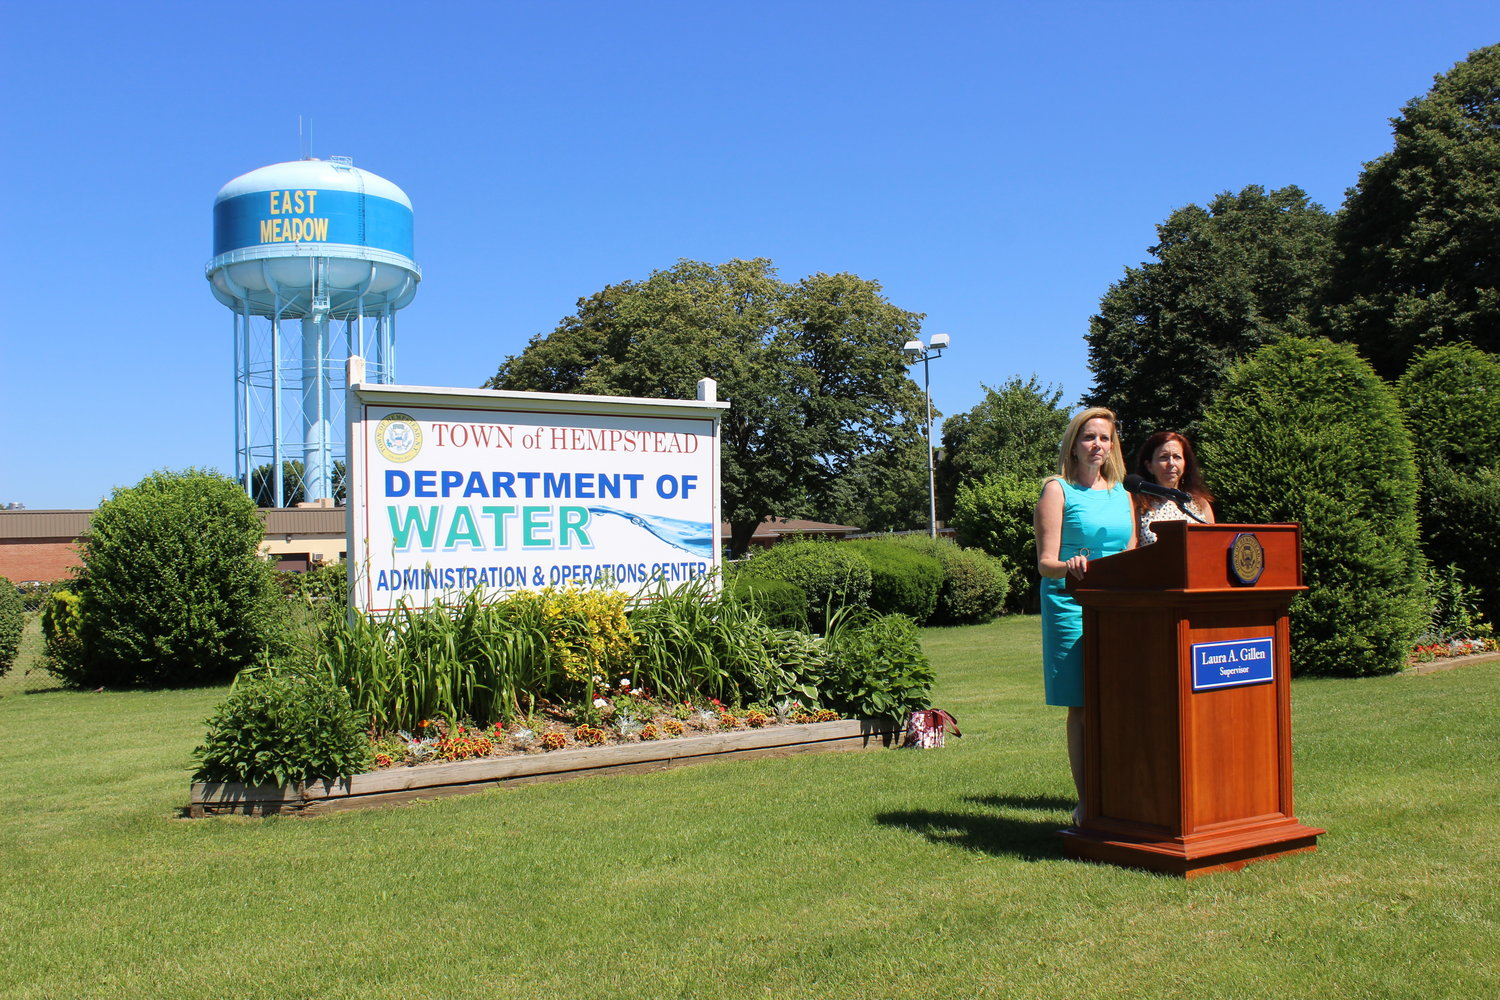 Town of Hempstead Supervisor Laura Gillen announced on July 3 her plan to sue the manufacturers she said were responsible for polluting the town's water with 1,4-dioxane, a potentially harmful chemical. She was joined by Adrienne Esposito, director of the Citizens Campaign for the Environment, at the Town of Hempstead Water Department in East Meadow.